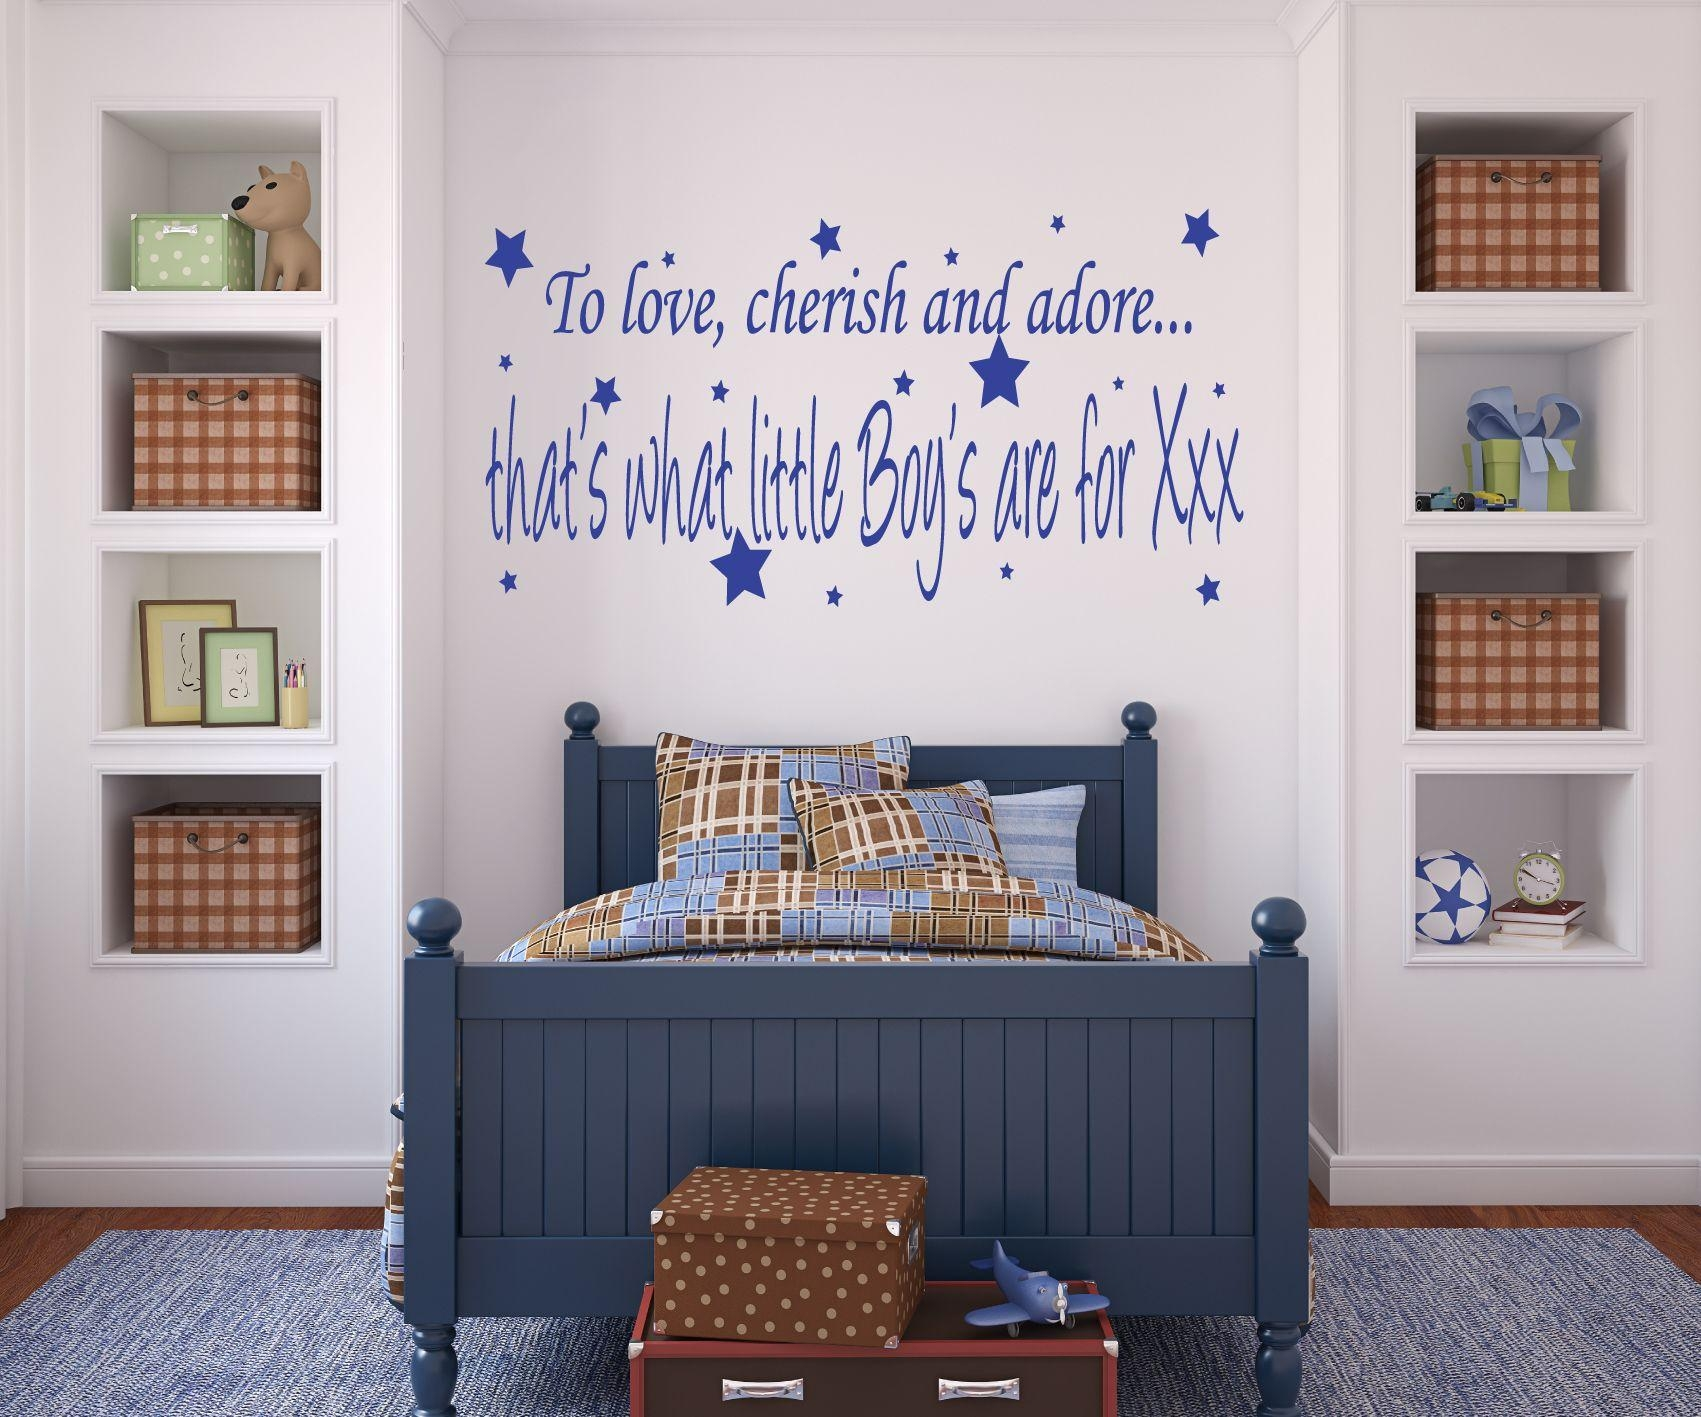 Wall Art Designs: Wall Art For Boys Bedroom Nursery Wall Art, Wall Regarding Wall Art For Bedroom (View 19 of 20)